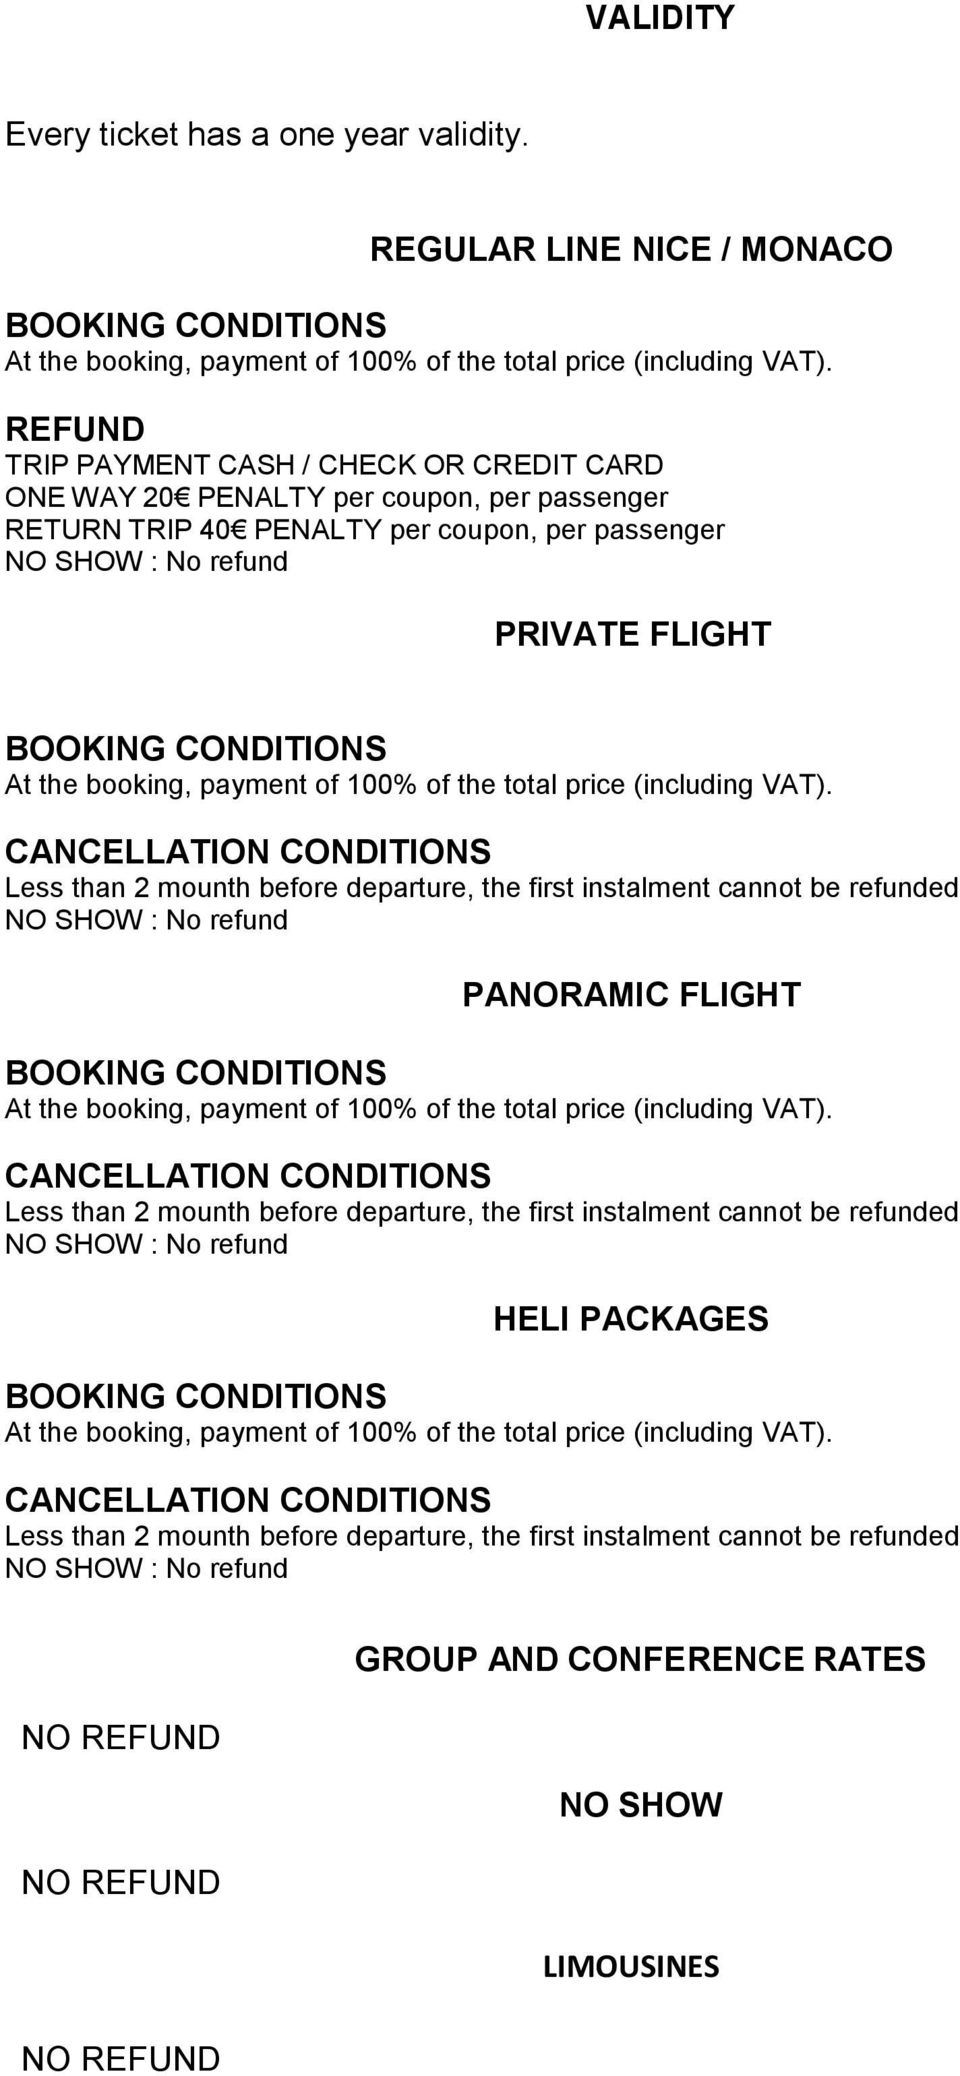 passenger PRIVATE FLIGHT CANCELLATION CONDITIONS Less than 2 mounth before departure, the first instalment cannot be refunded PANORAMIC FLIGHT CANCELLATION